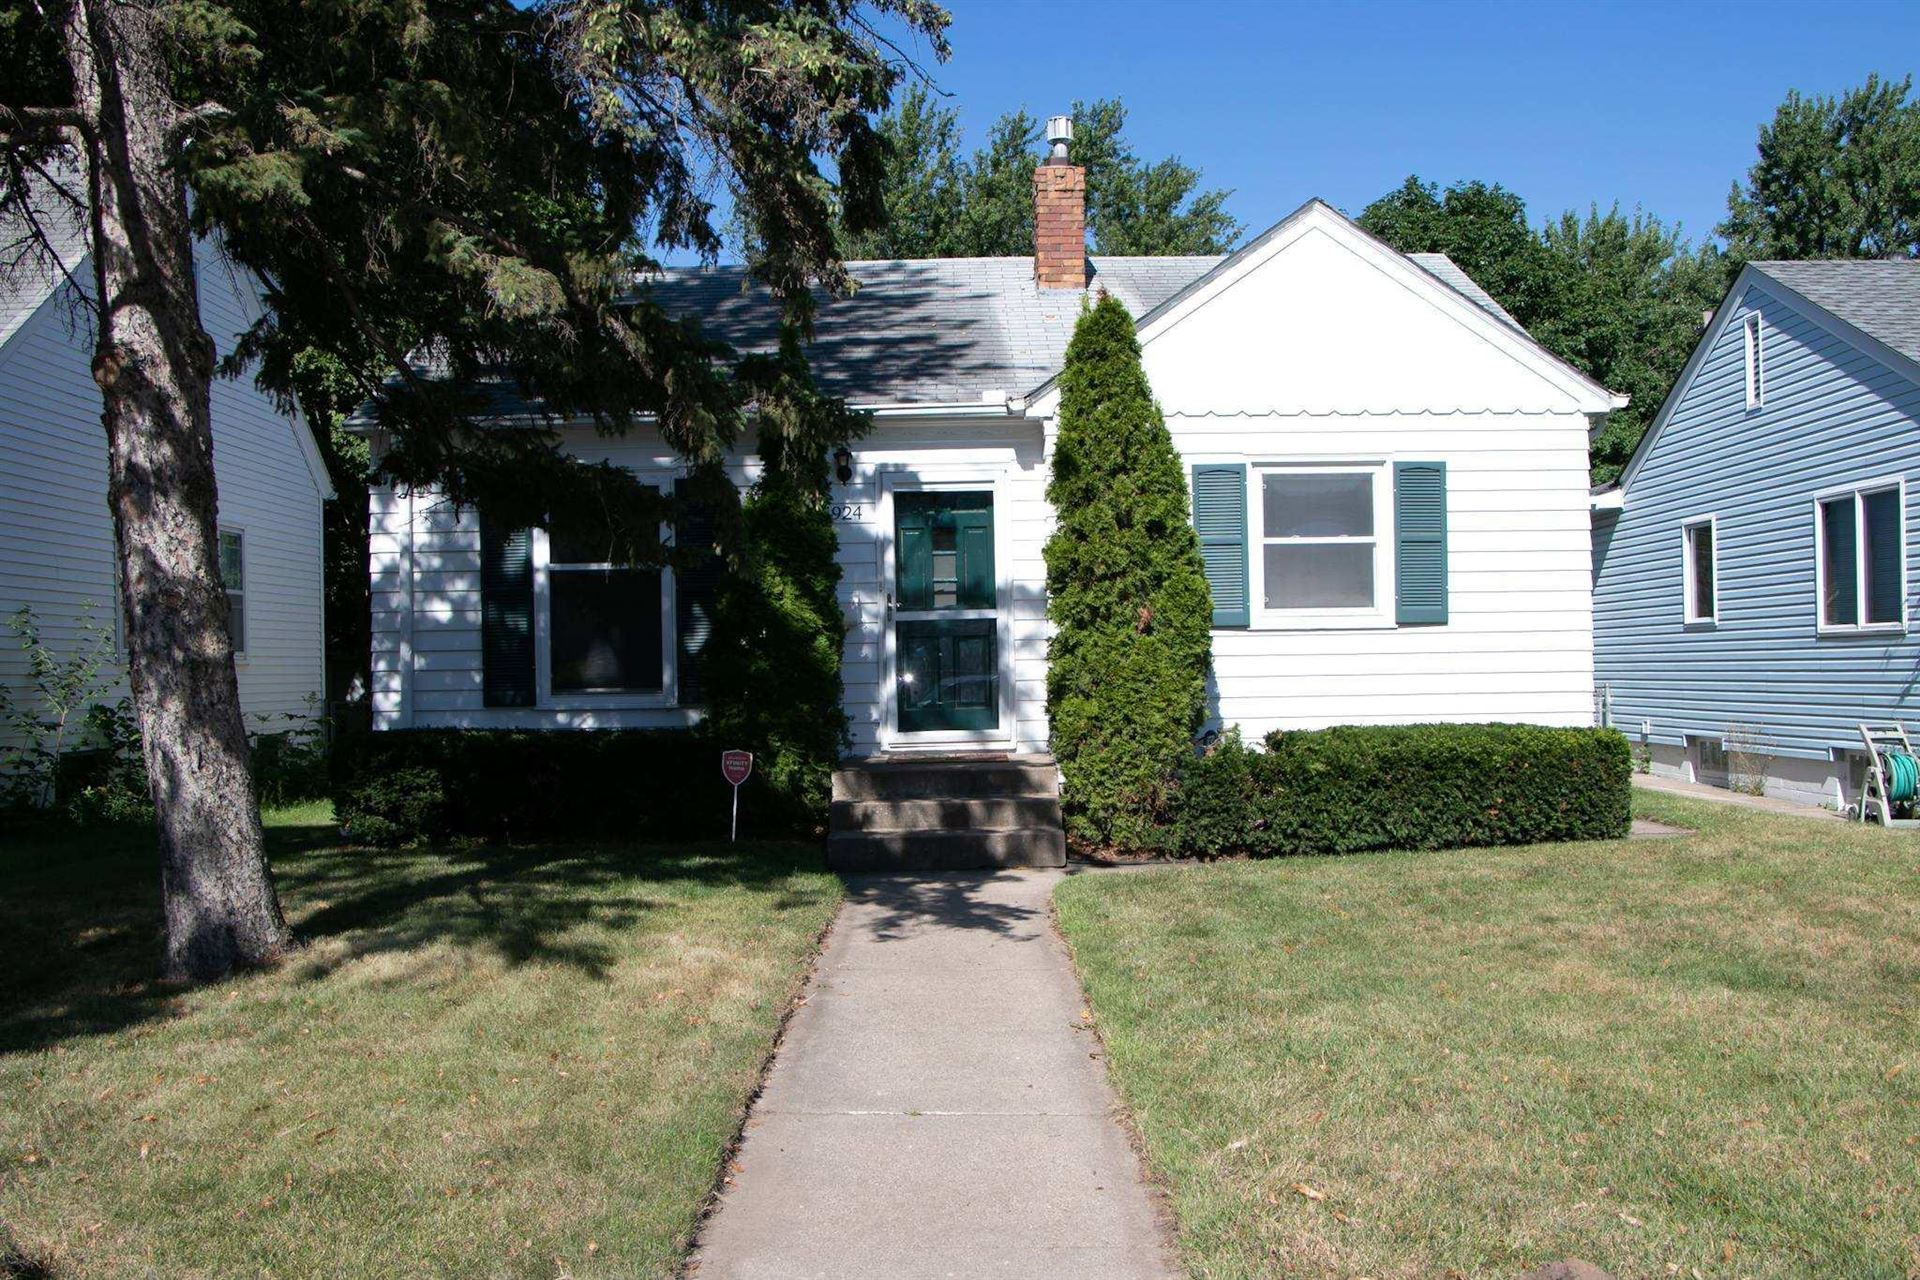 4924 6th Street NE, Columbia Heights, MN 55421 - MLS#: 5622535